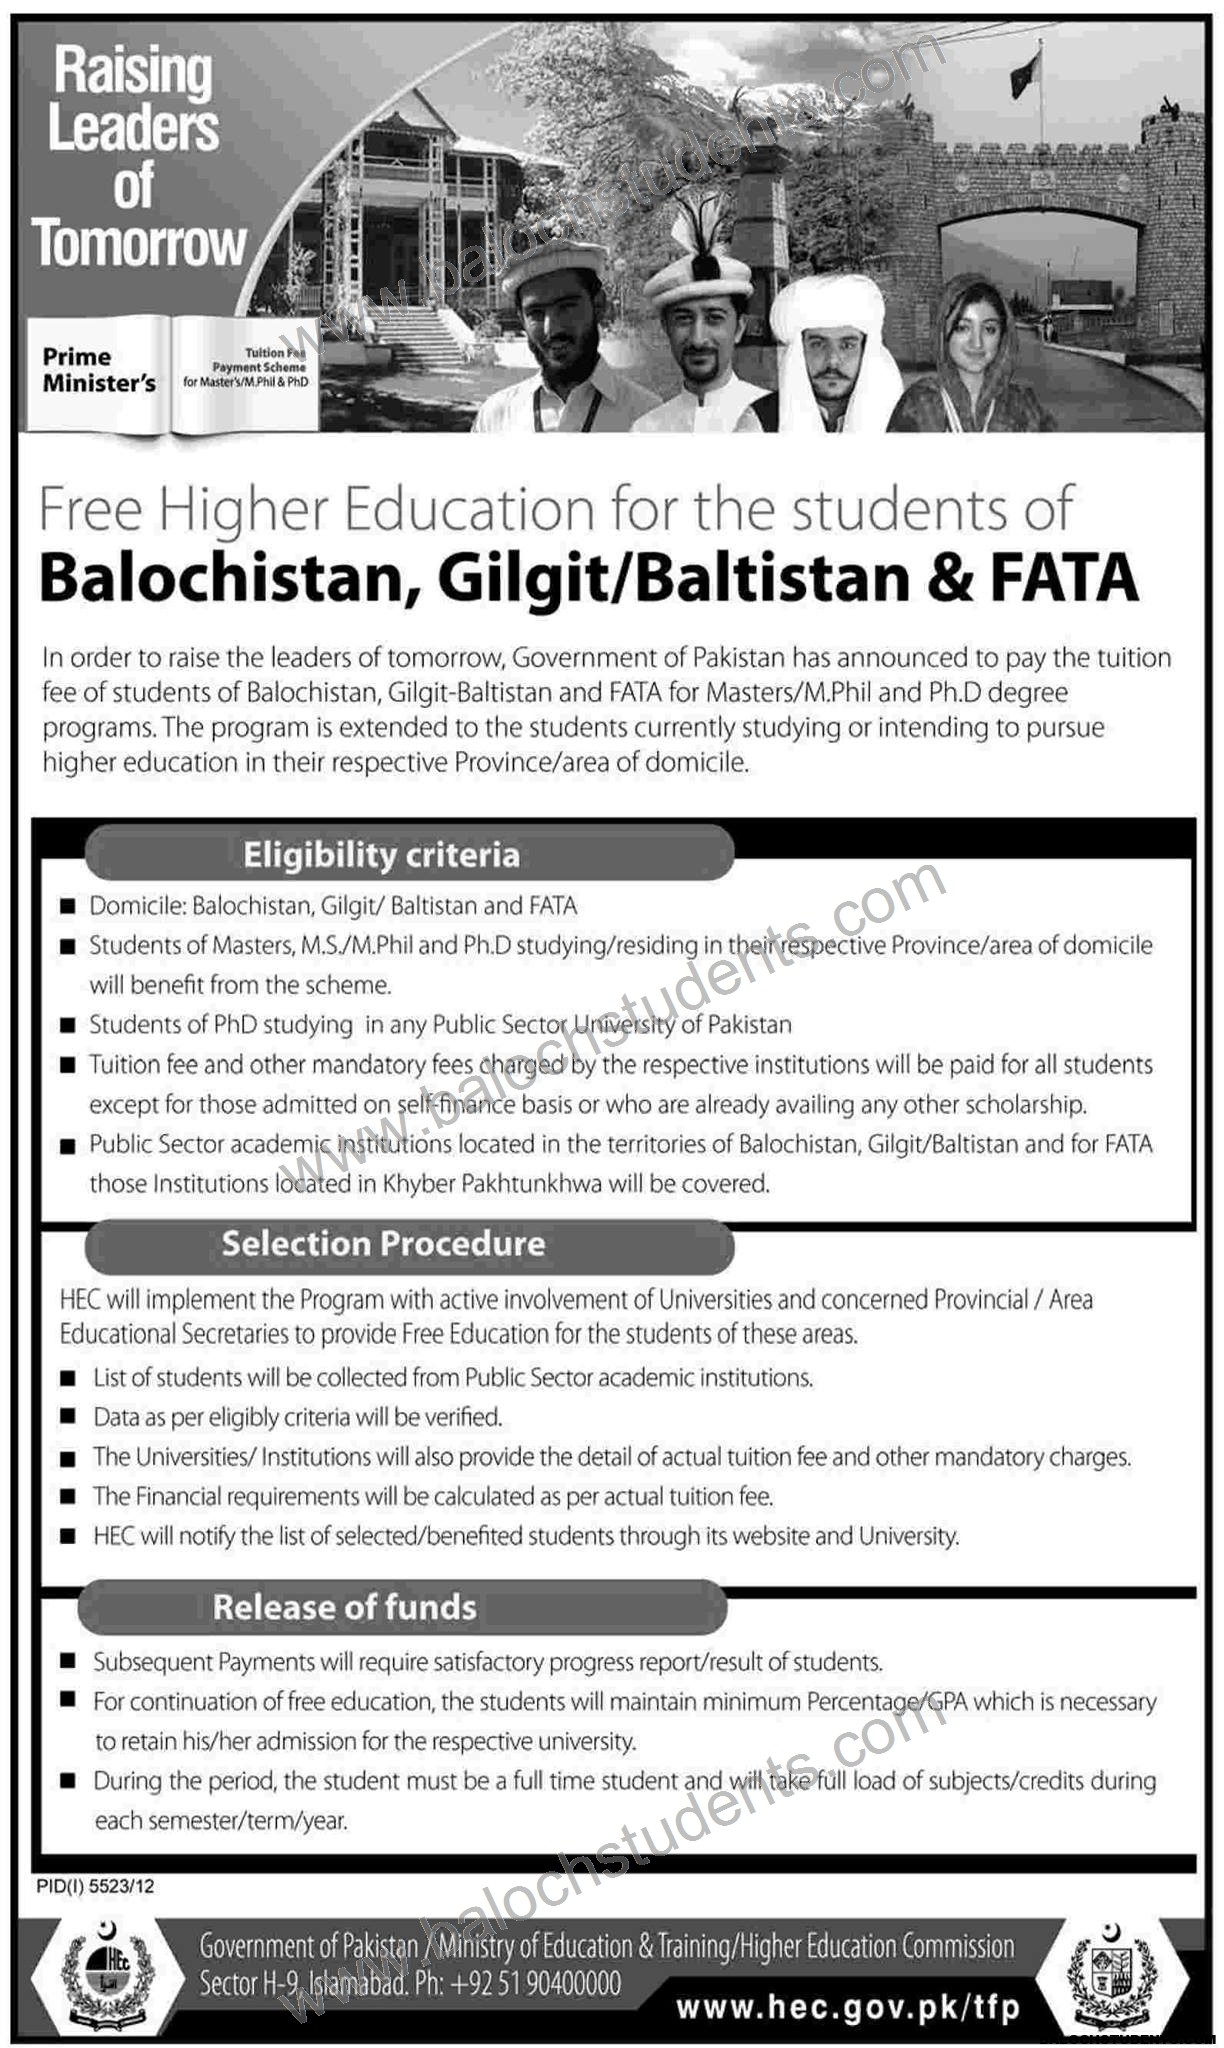 MSMPhill, PhD Scholarships For Balochistan